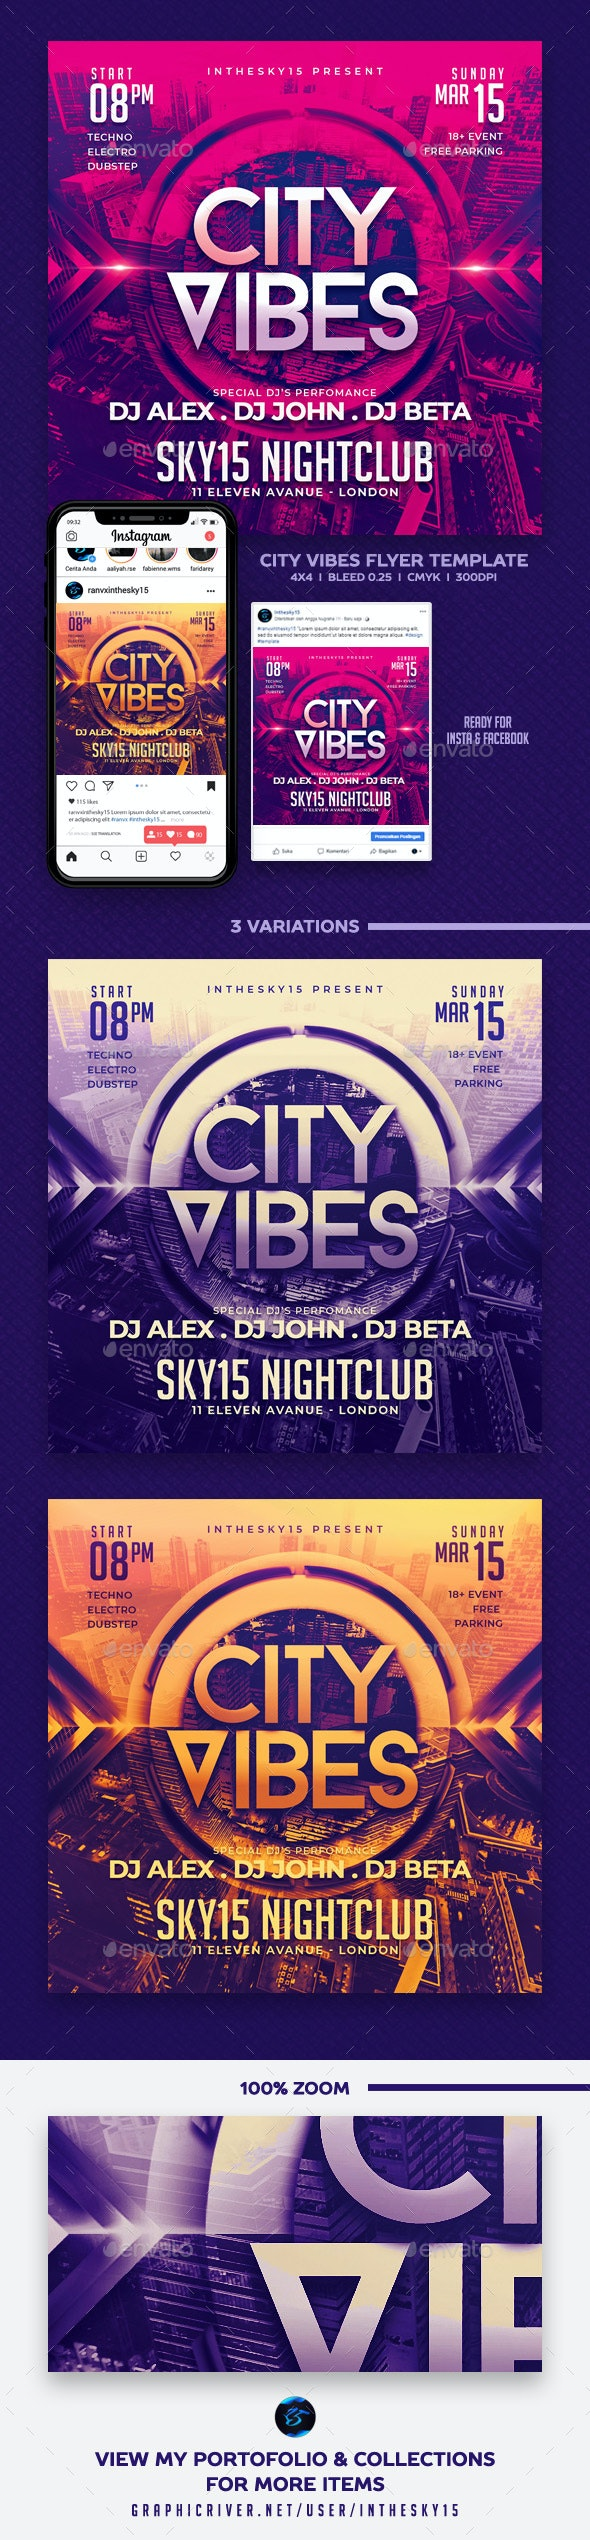 City Vibes Flyer Template - Flyers Print Templates